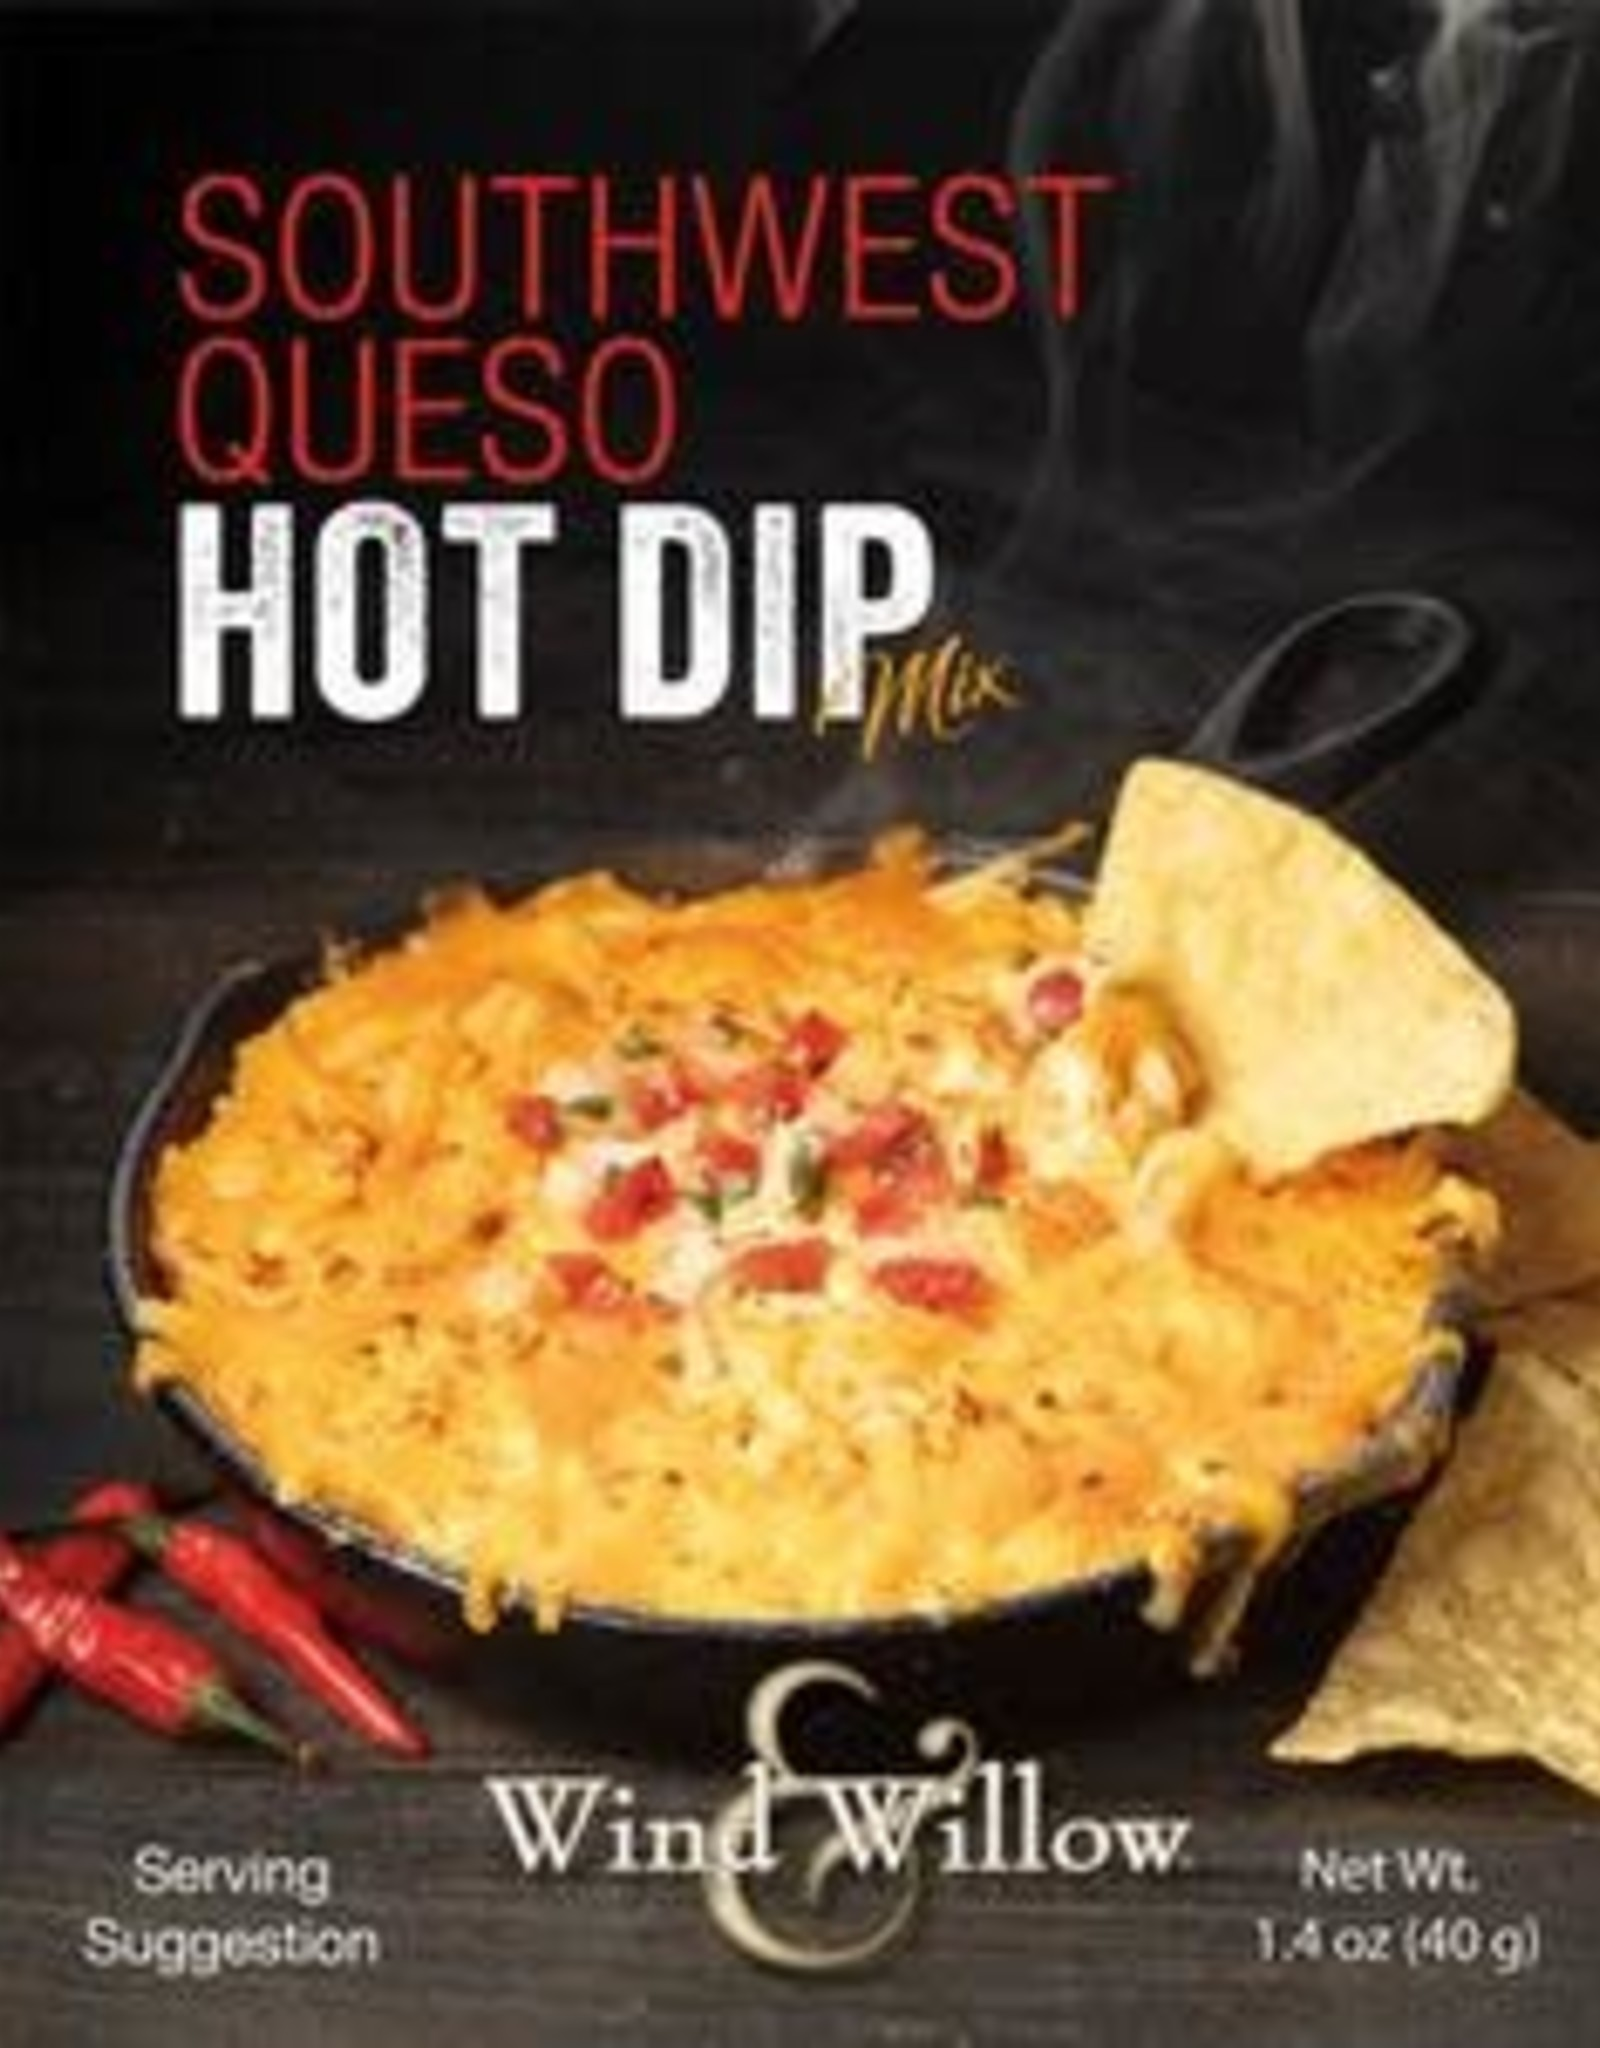 Wind & Willow Southwest Queso